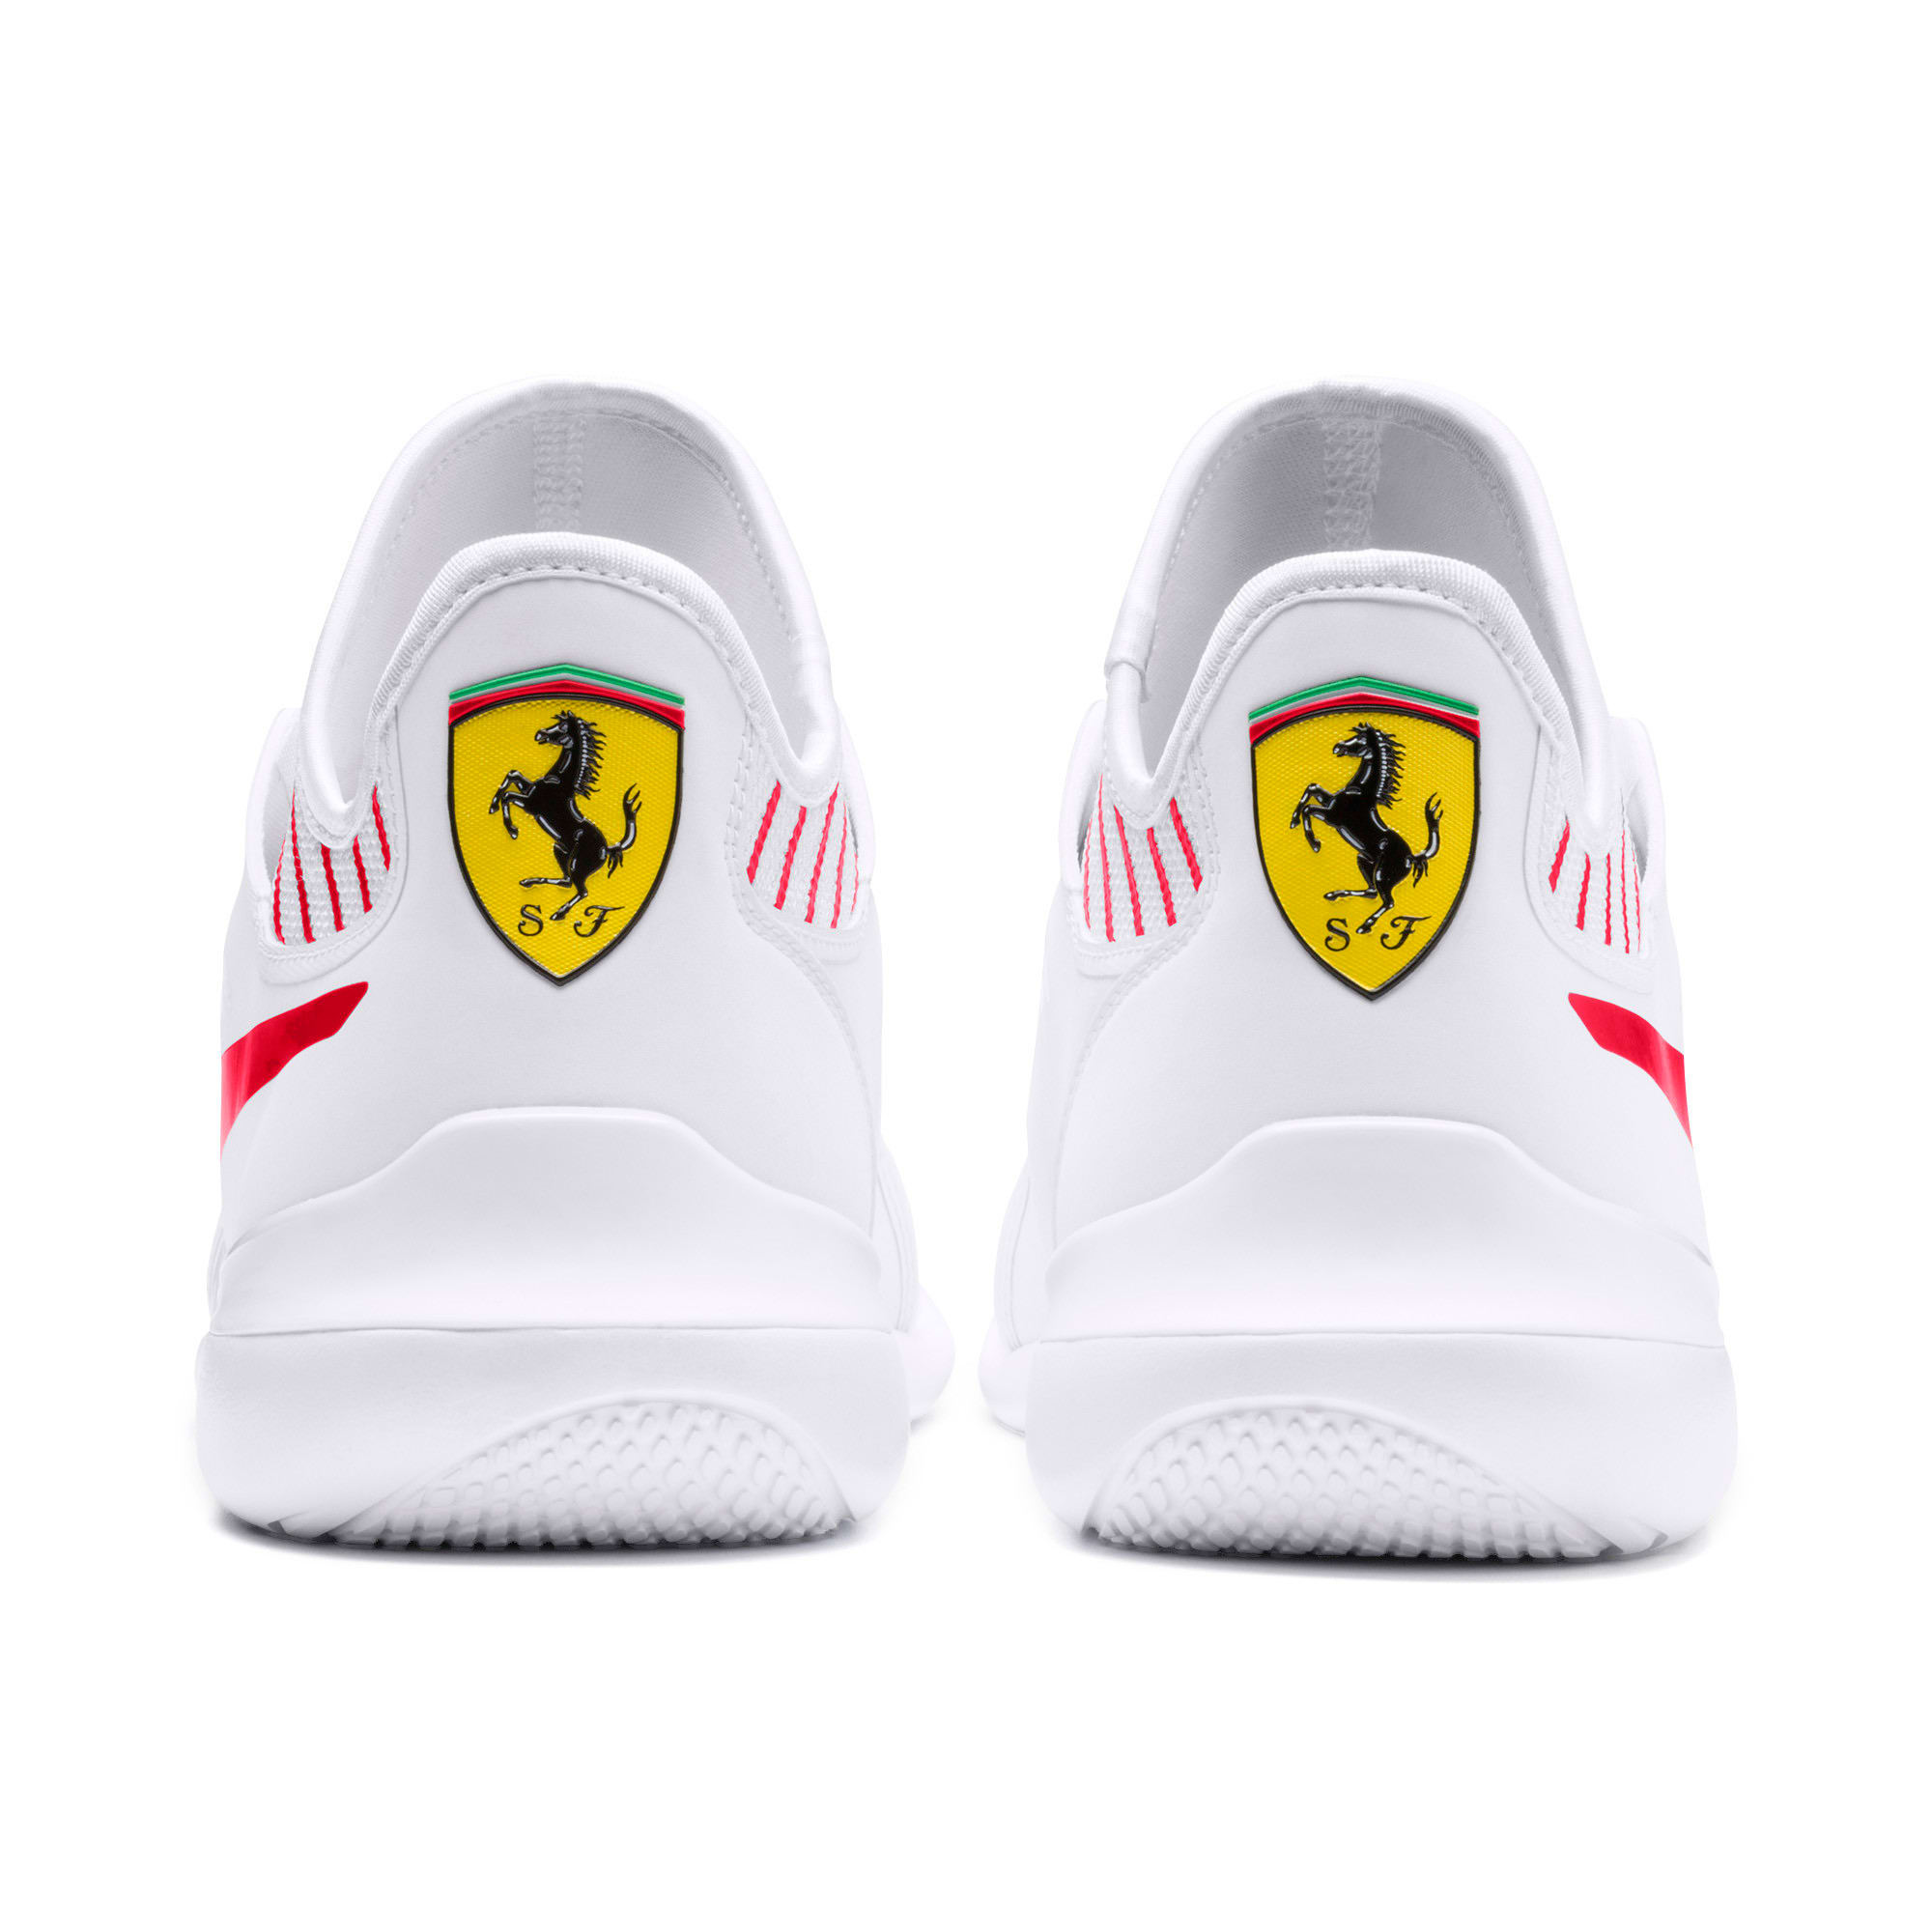 Thumbnail 4 of Scuderia Ferrari Evo Cat Mace Sneakers, Puma White-Rosso Corsa, medium